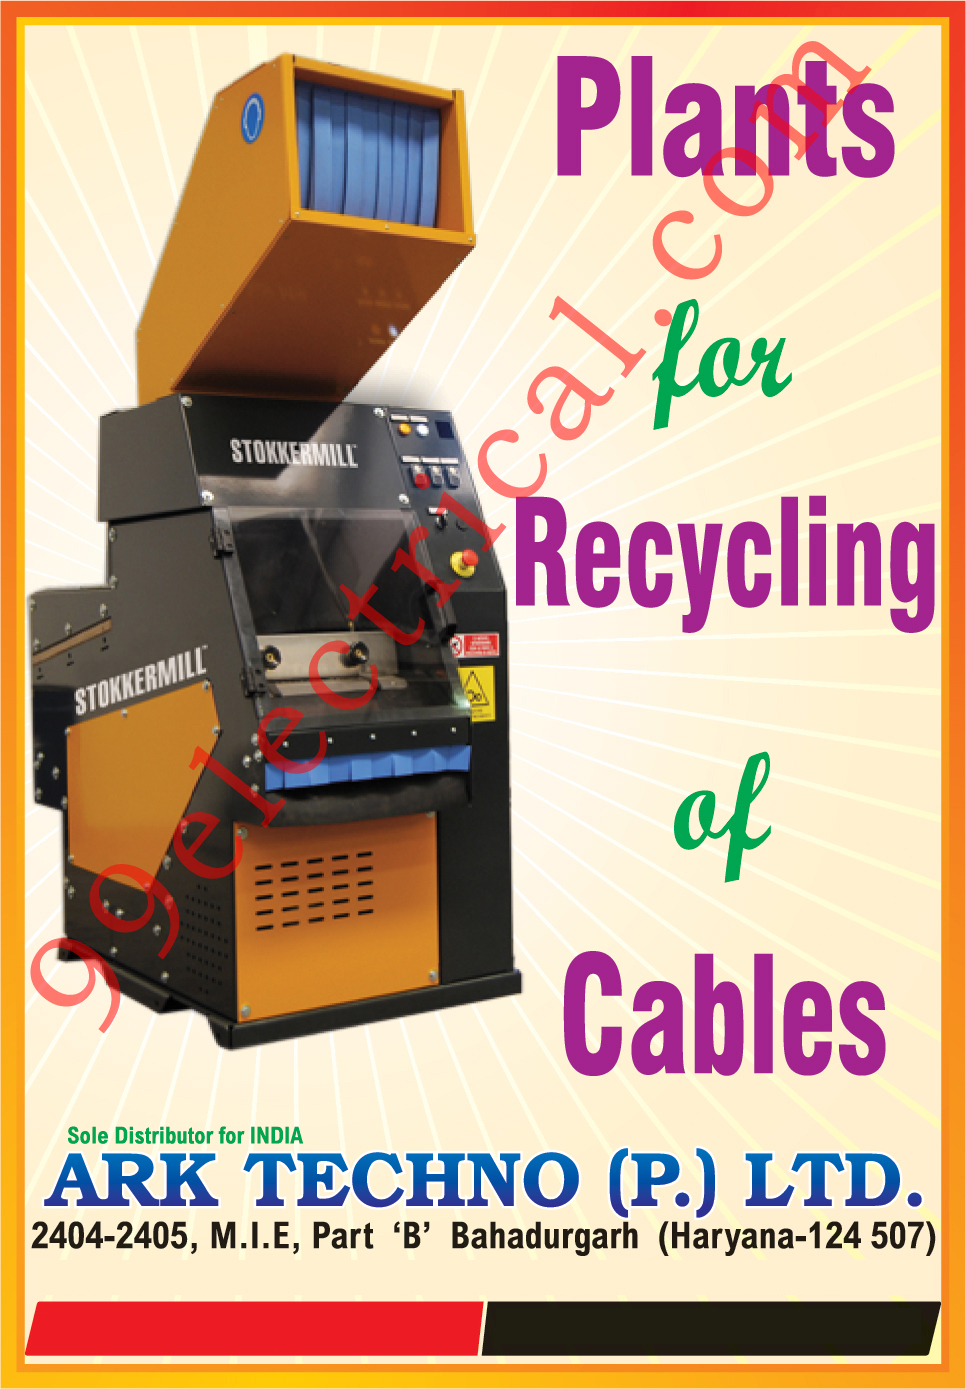 Cable Recycling Plants, Warning Triangles, Reflex Reflectors, Plastic Moulded Parts,Cables Recycling